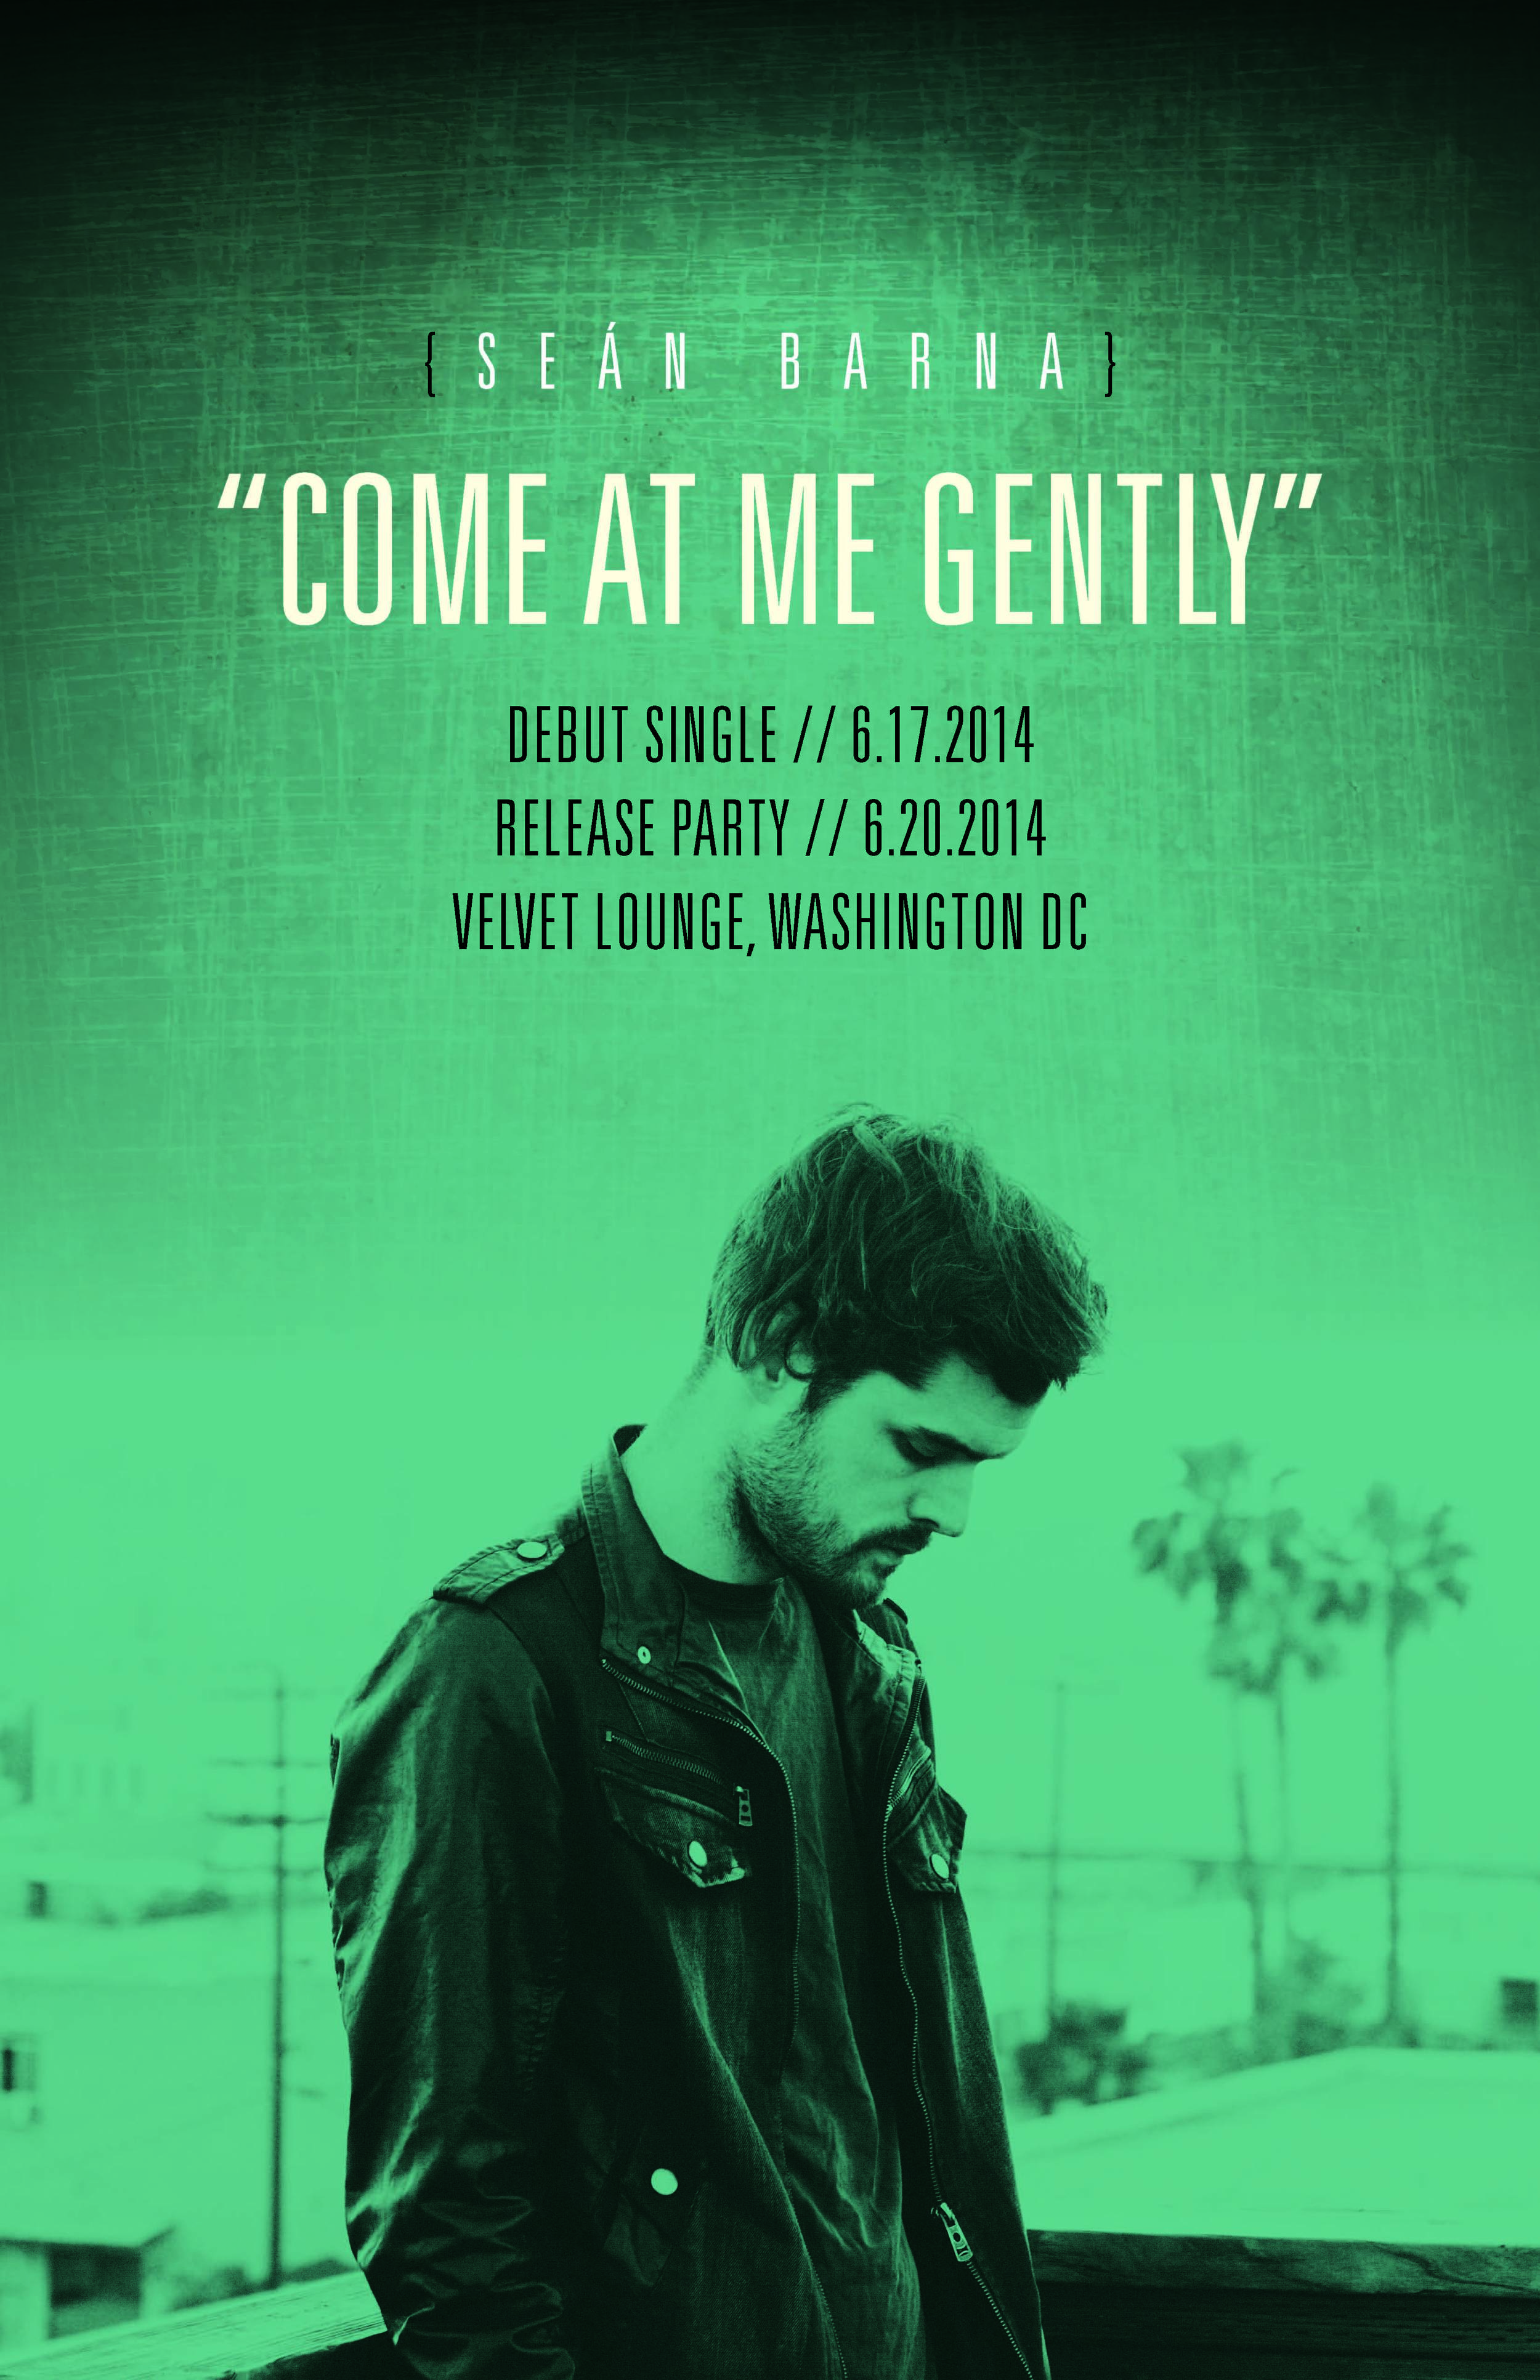 SEAN BARNA // COME AT ME GENTLY